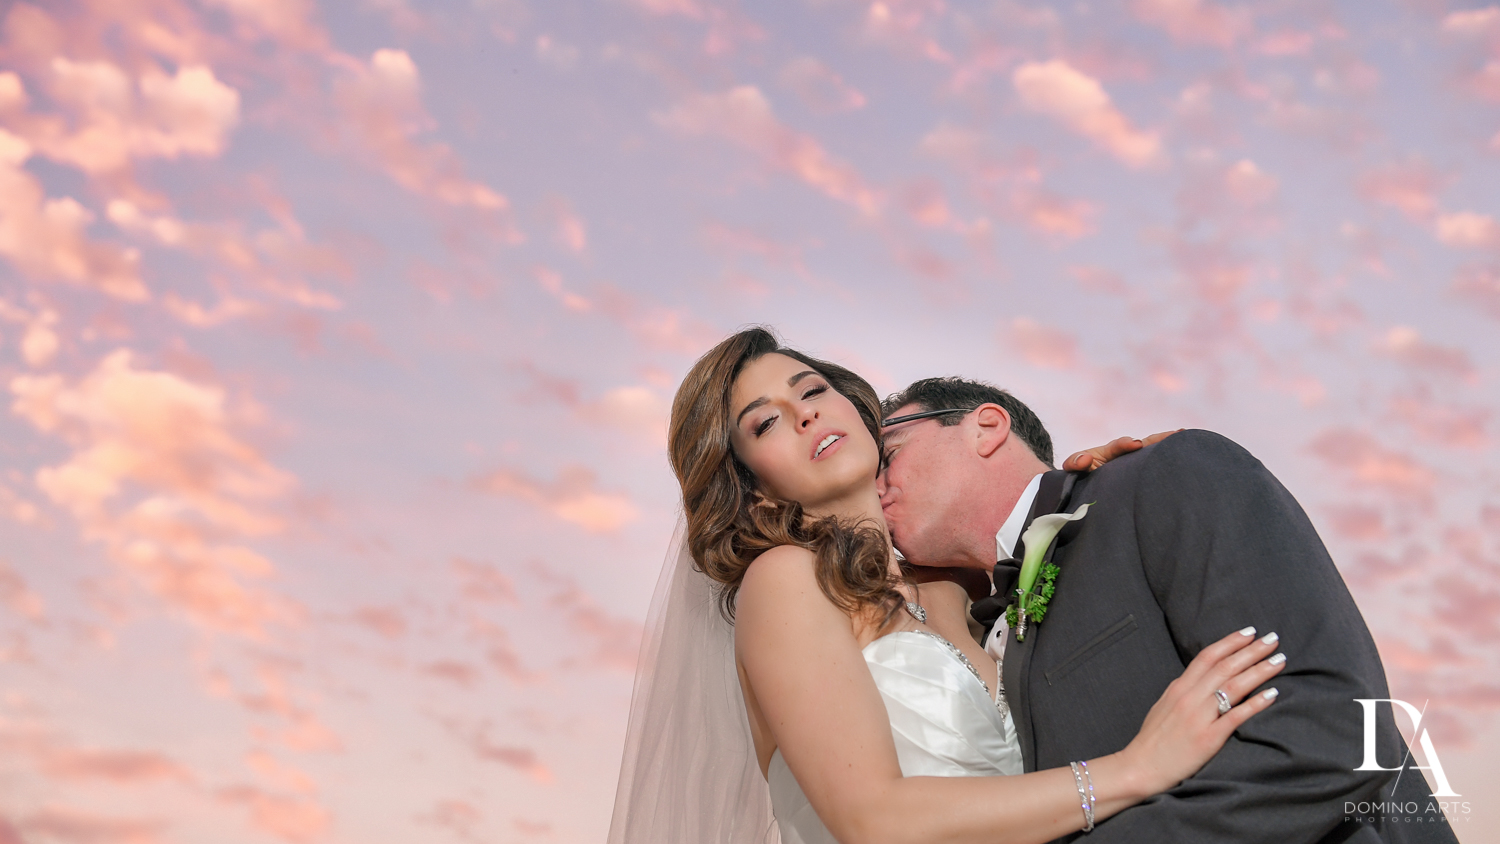 Romantic Wedding Photography in South Florida at Fort Lauderdale Marriott Harbor Beach Resort & Spa by Domino Arts Photography